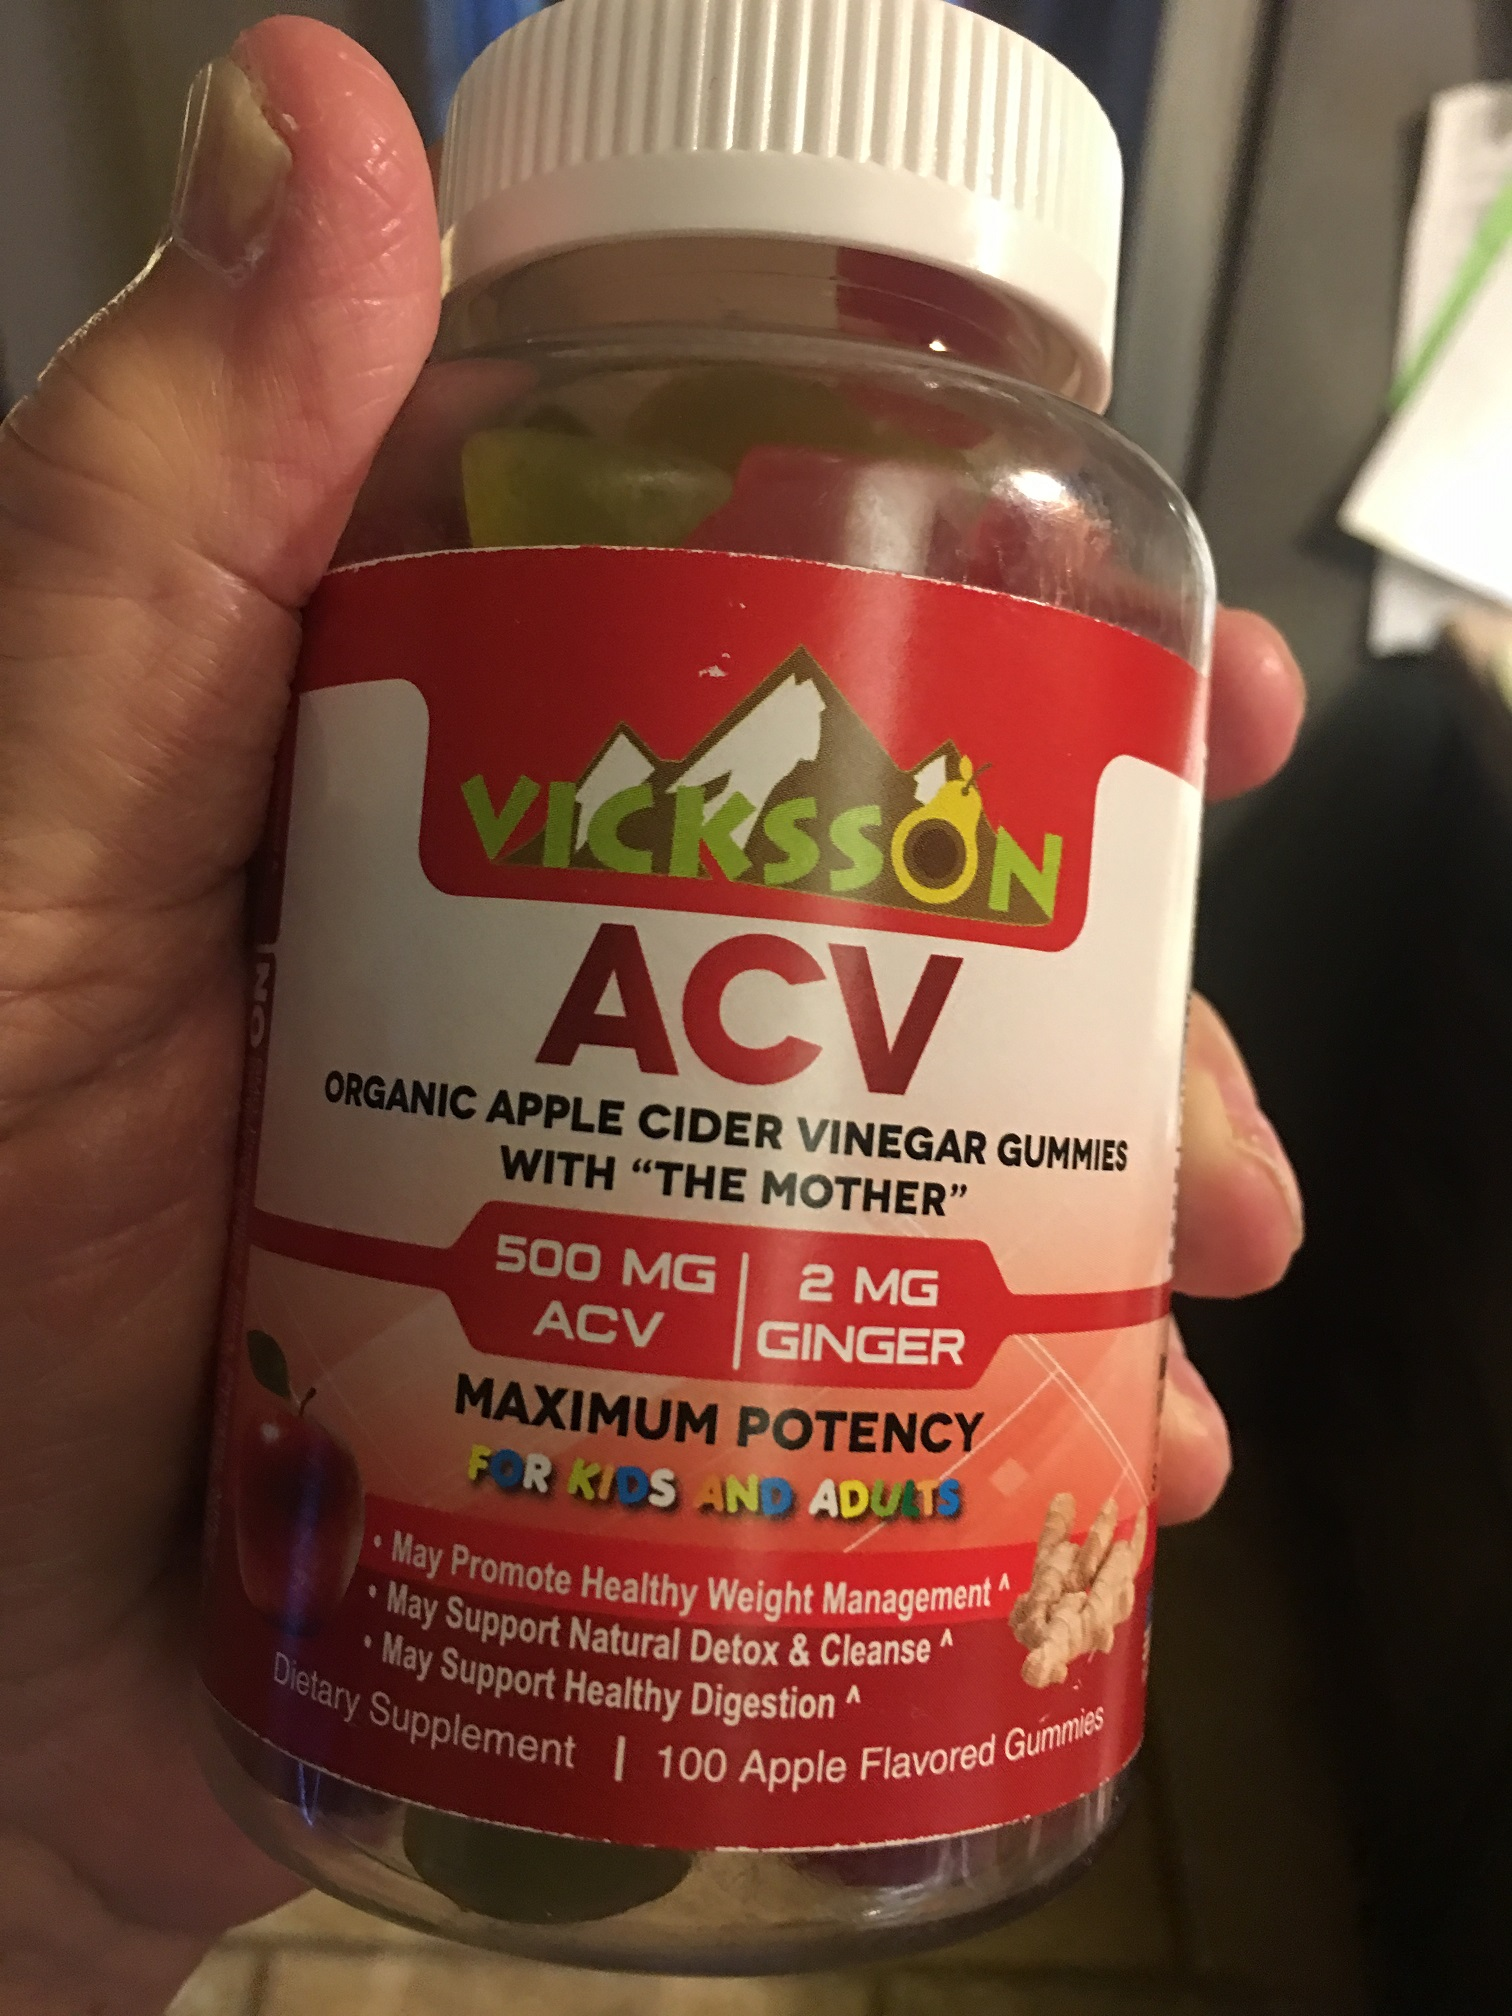 Much more palatable ACV